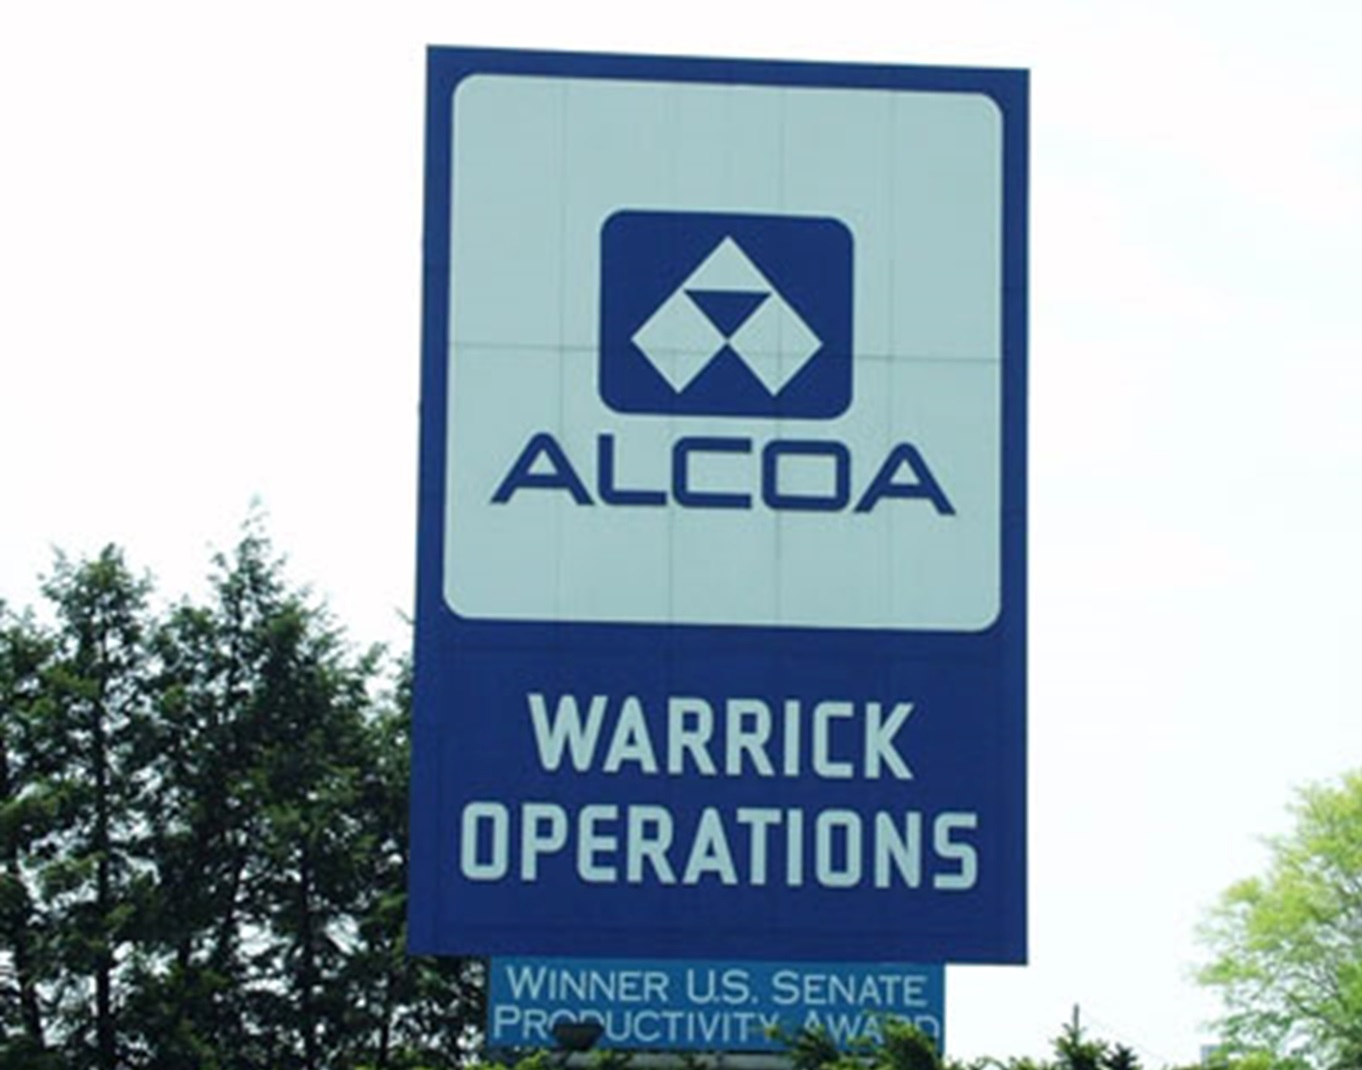 Contract Negotiations Break Apart Between Alcoa and United Steelworkers Union